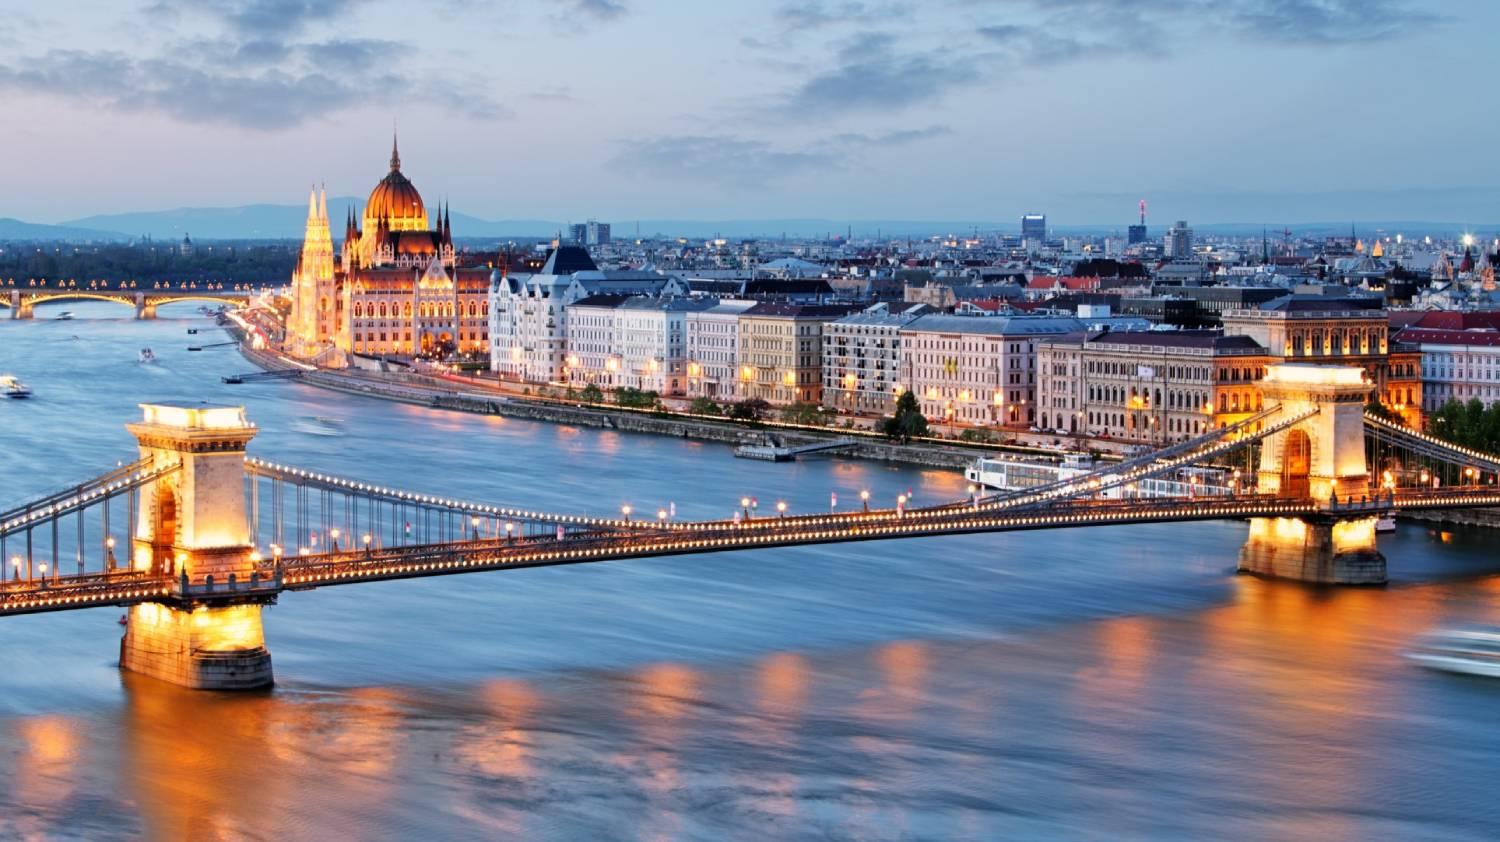 Danube River - Things To Do In Budapest